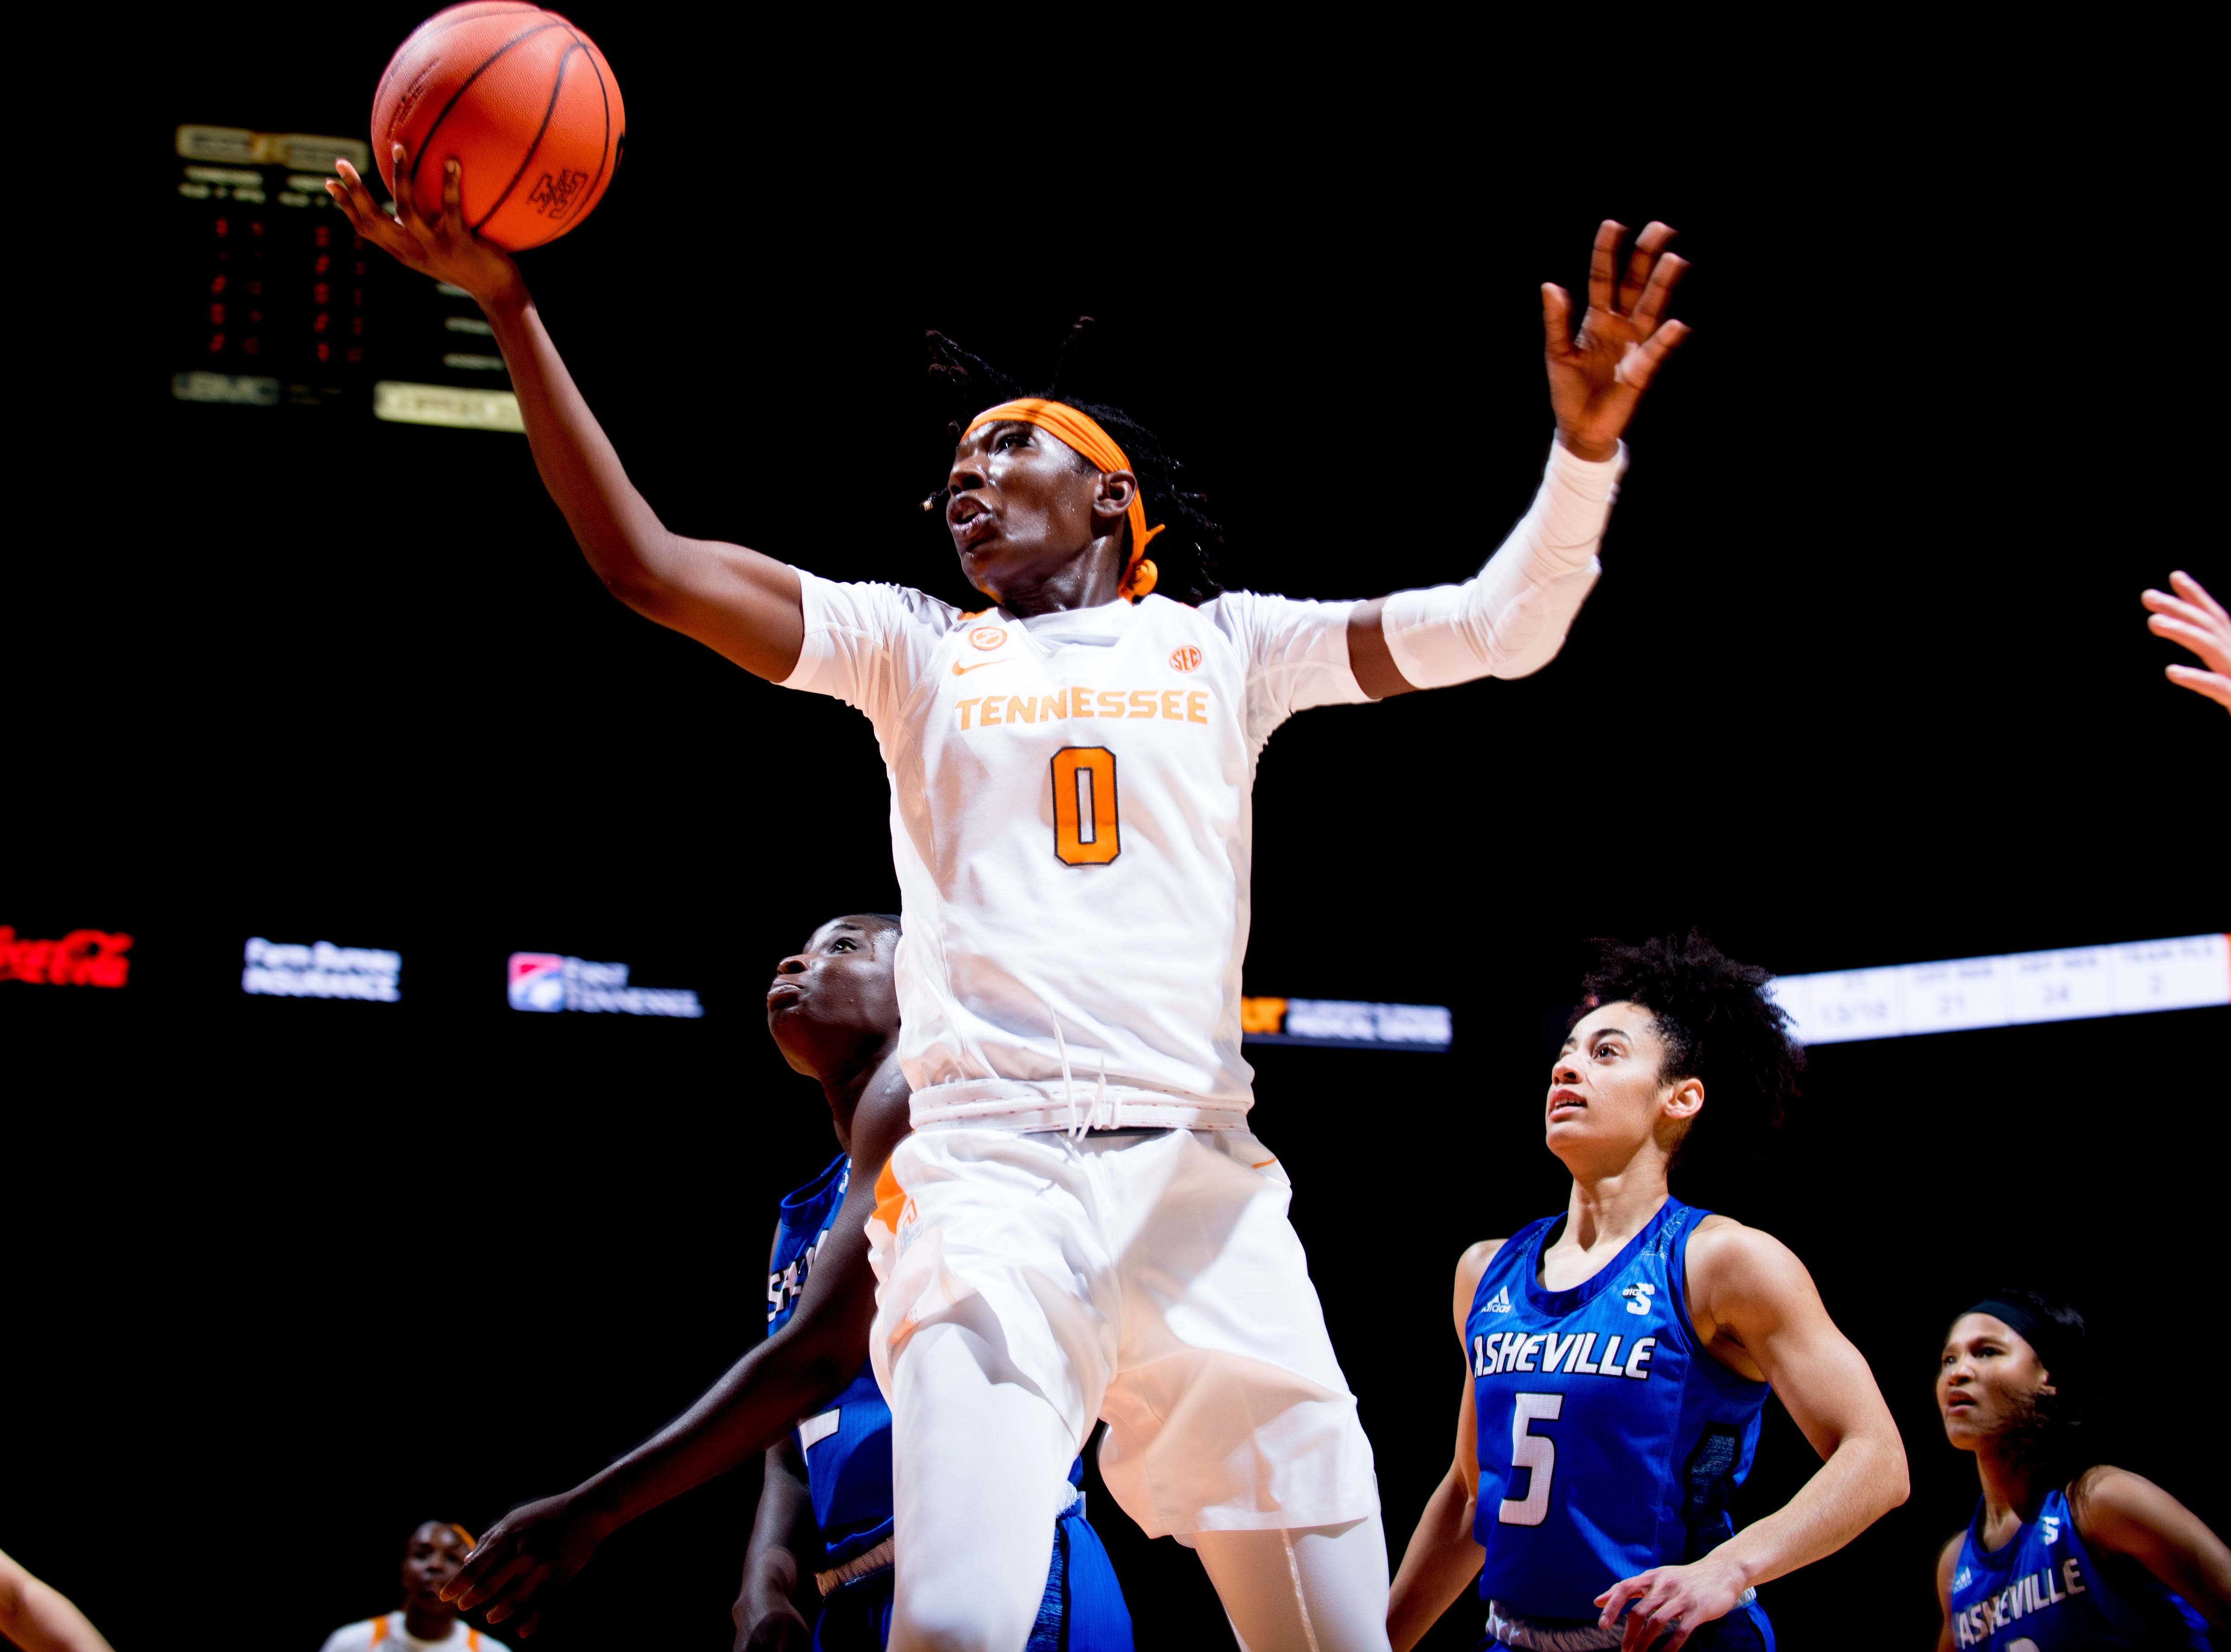 Tennessee guard/forward Rennia Davis (0) shoots a layup during a game between Tennessee and UNC Asheville at Thompson-Boling Arena in Knoxville, Tennessee on Wednesday, November 14, 2018.